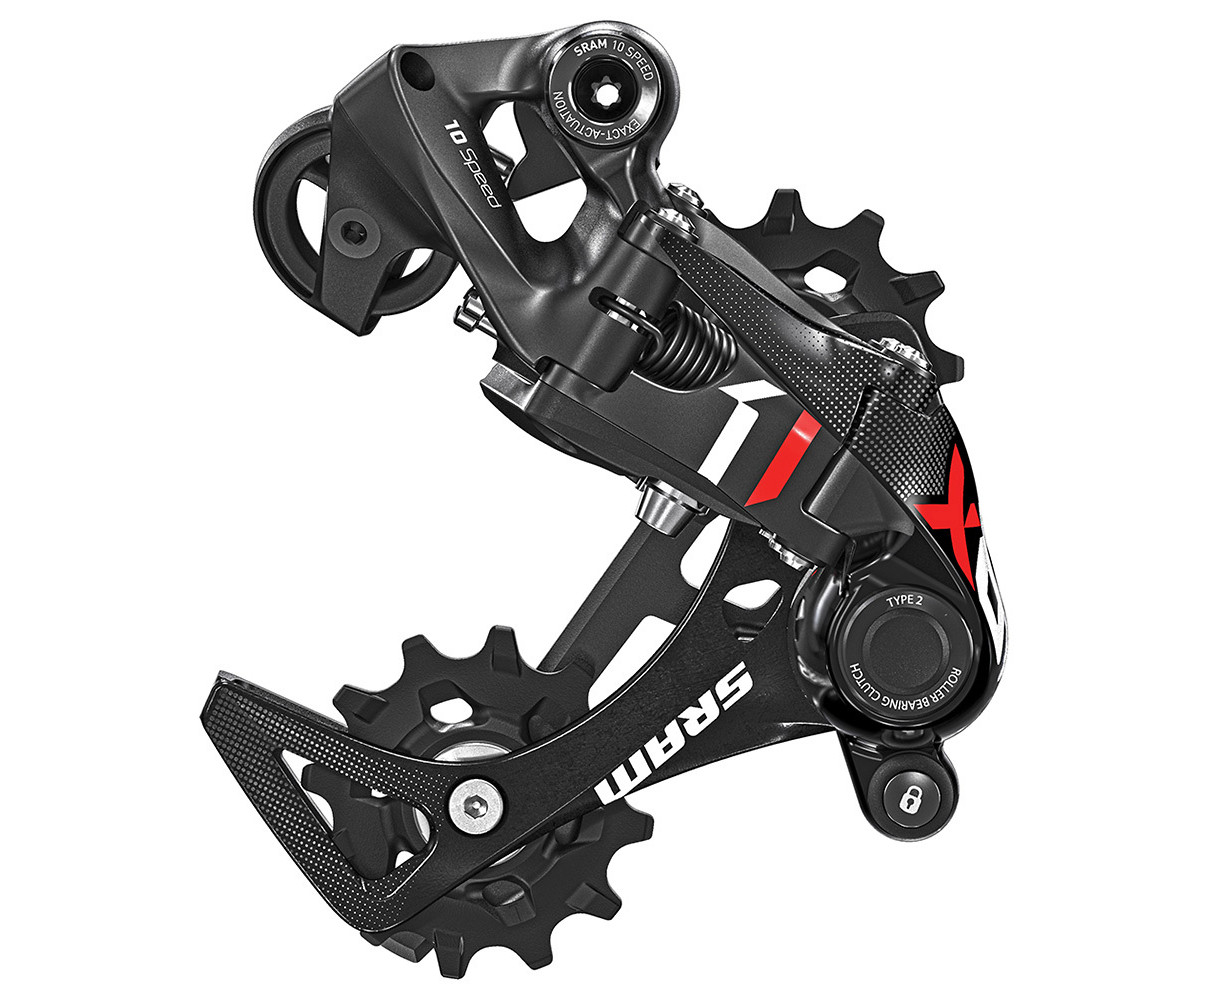 SRAM X01 DH X-Horizon Rear Derailleur SRAM X01 DH 10-Speed X-HORIZON™ Rear Derailleur